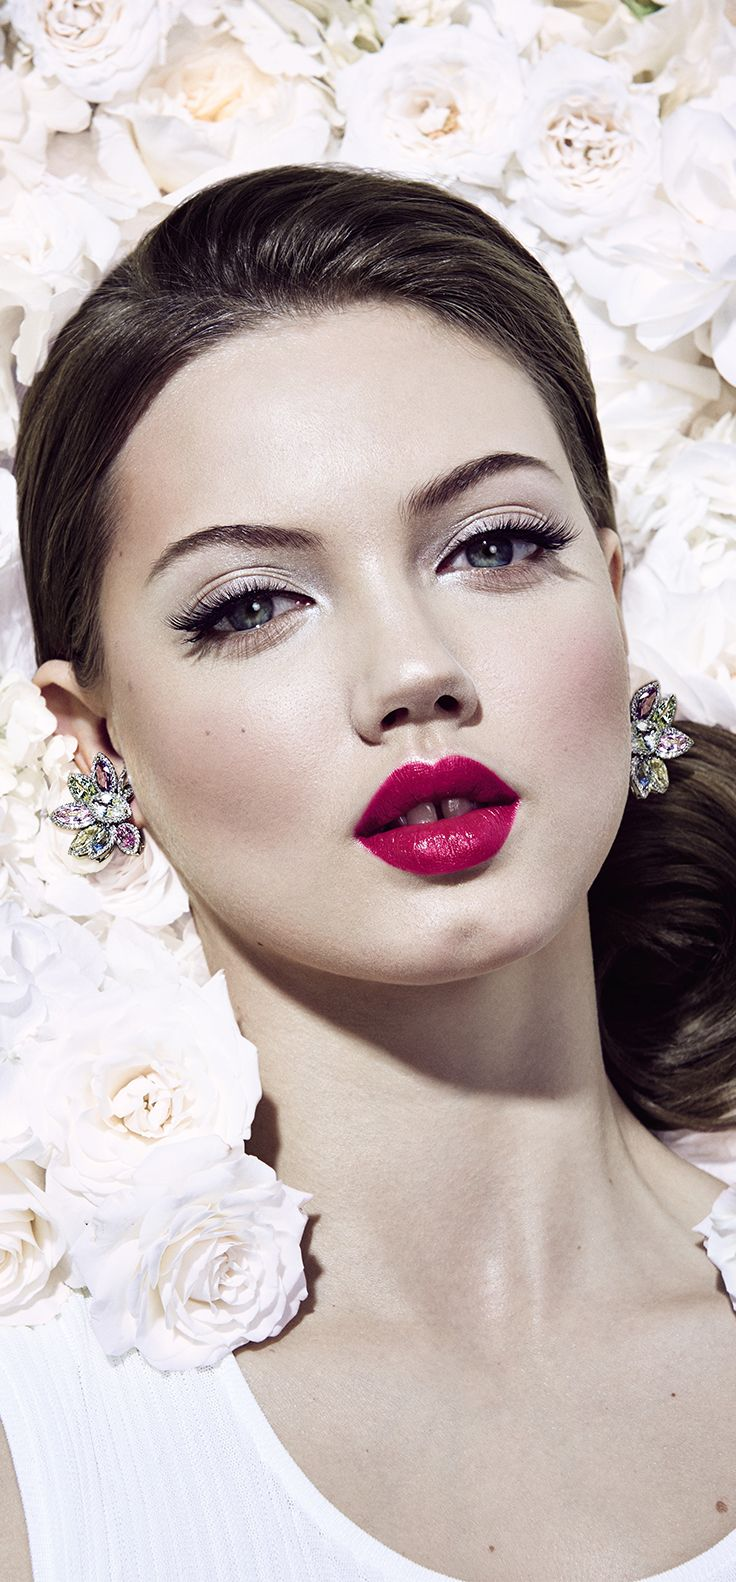 Be your own blooming beauty with #Dior Rouge Baum. #SaksGlamGardens